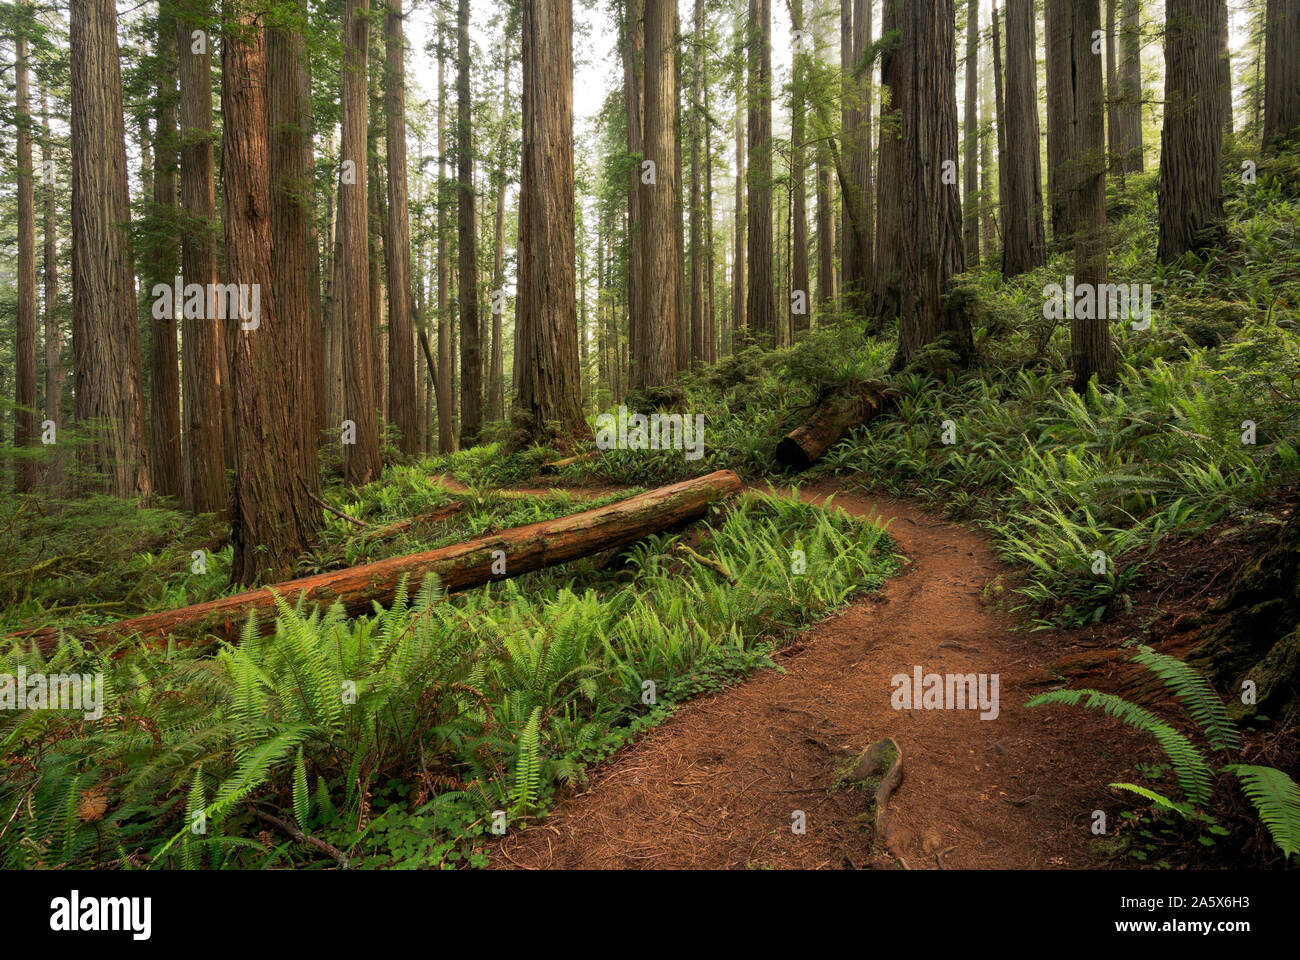 CA03765-00...CALIFORNIA - The Boy Scout Tree Trail winding through a redwood forest in Jedediah Smith Redwoods State Park; part of Redwoods National a Stock Photo